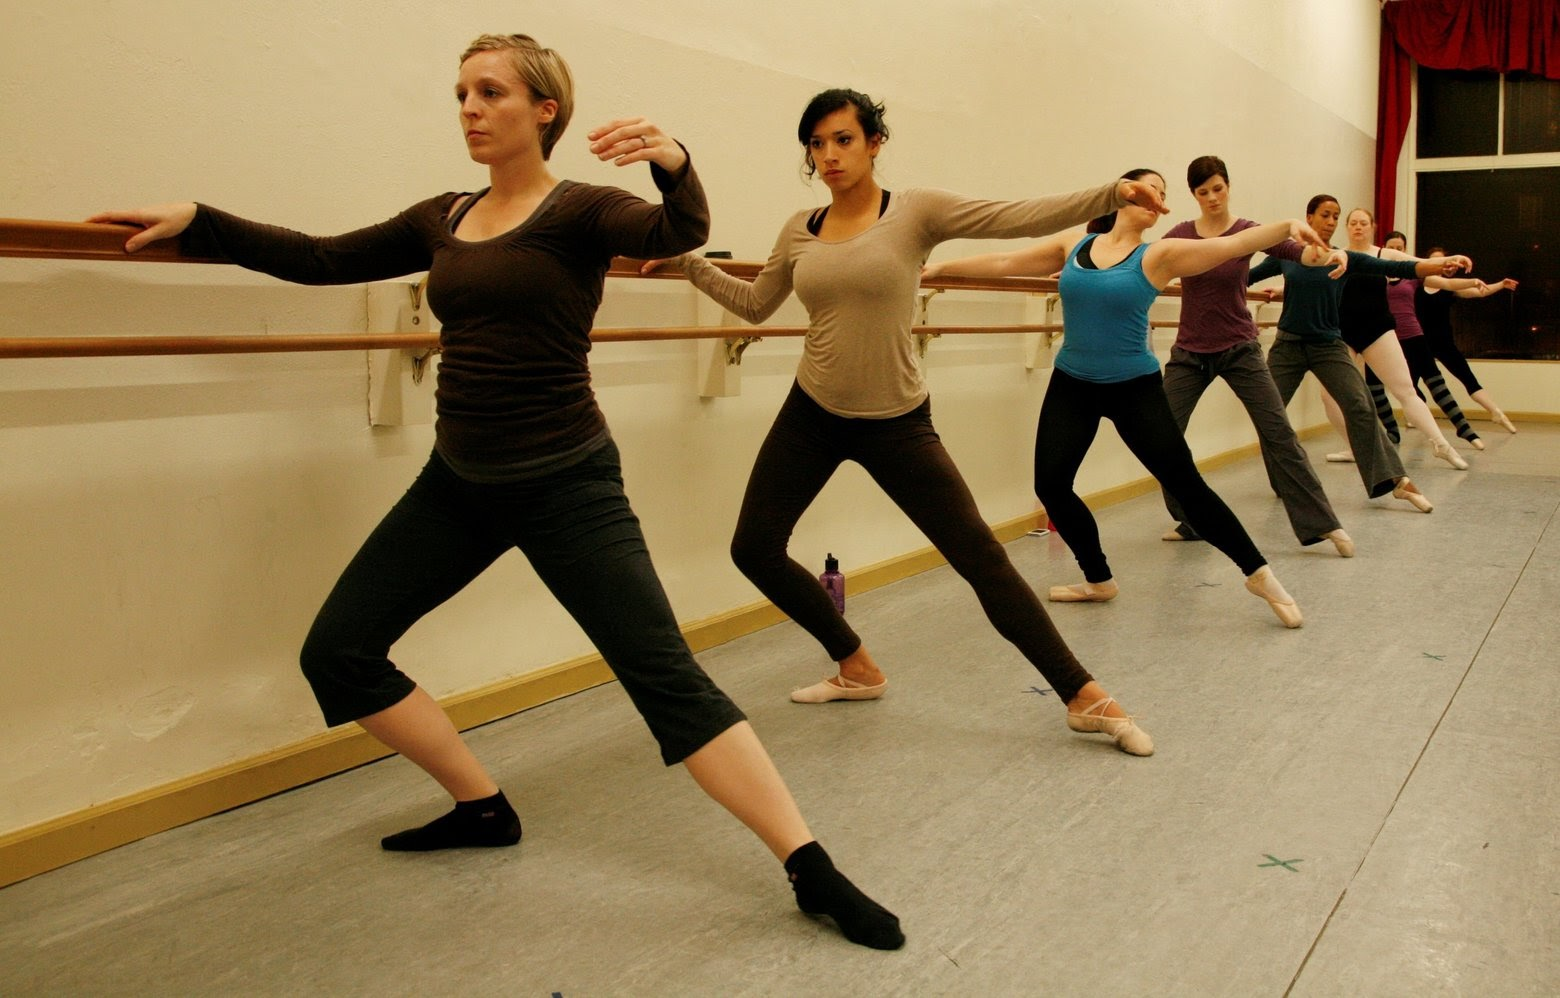 A group of ballet students dancing at a barre.